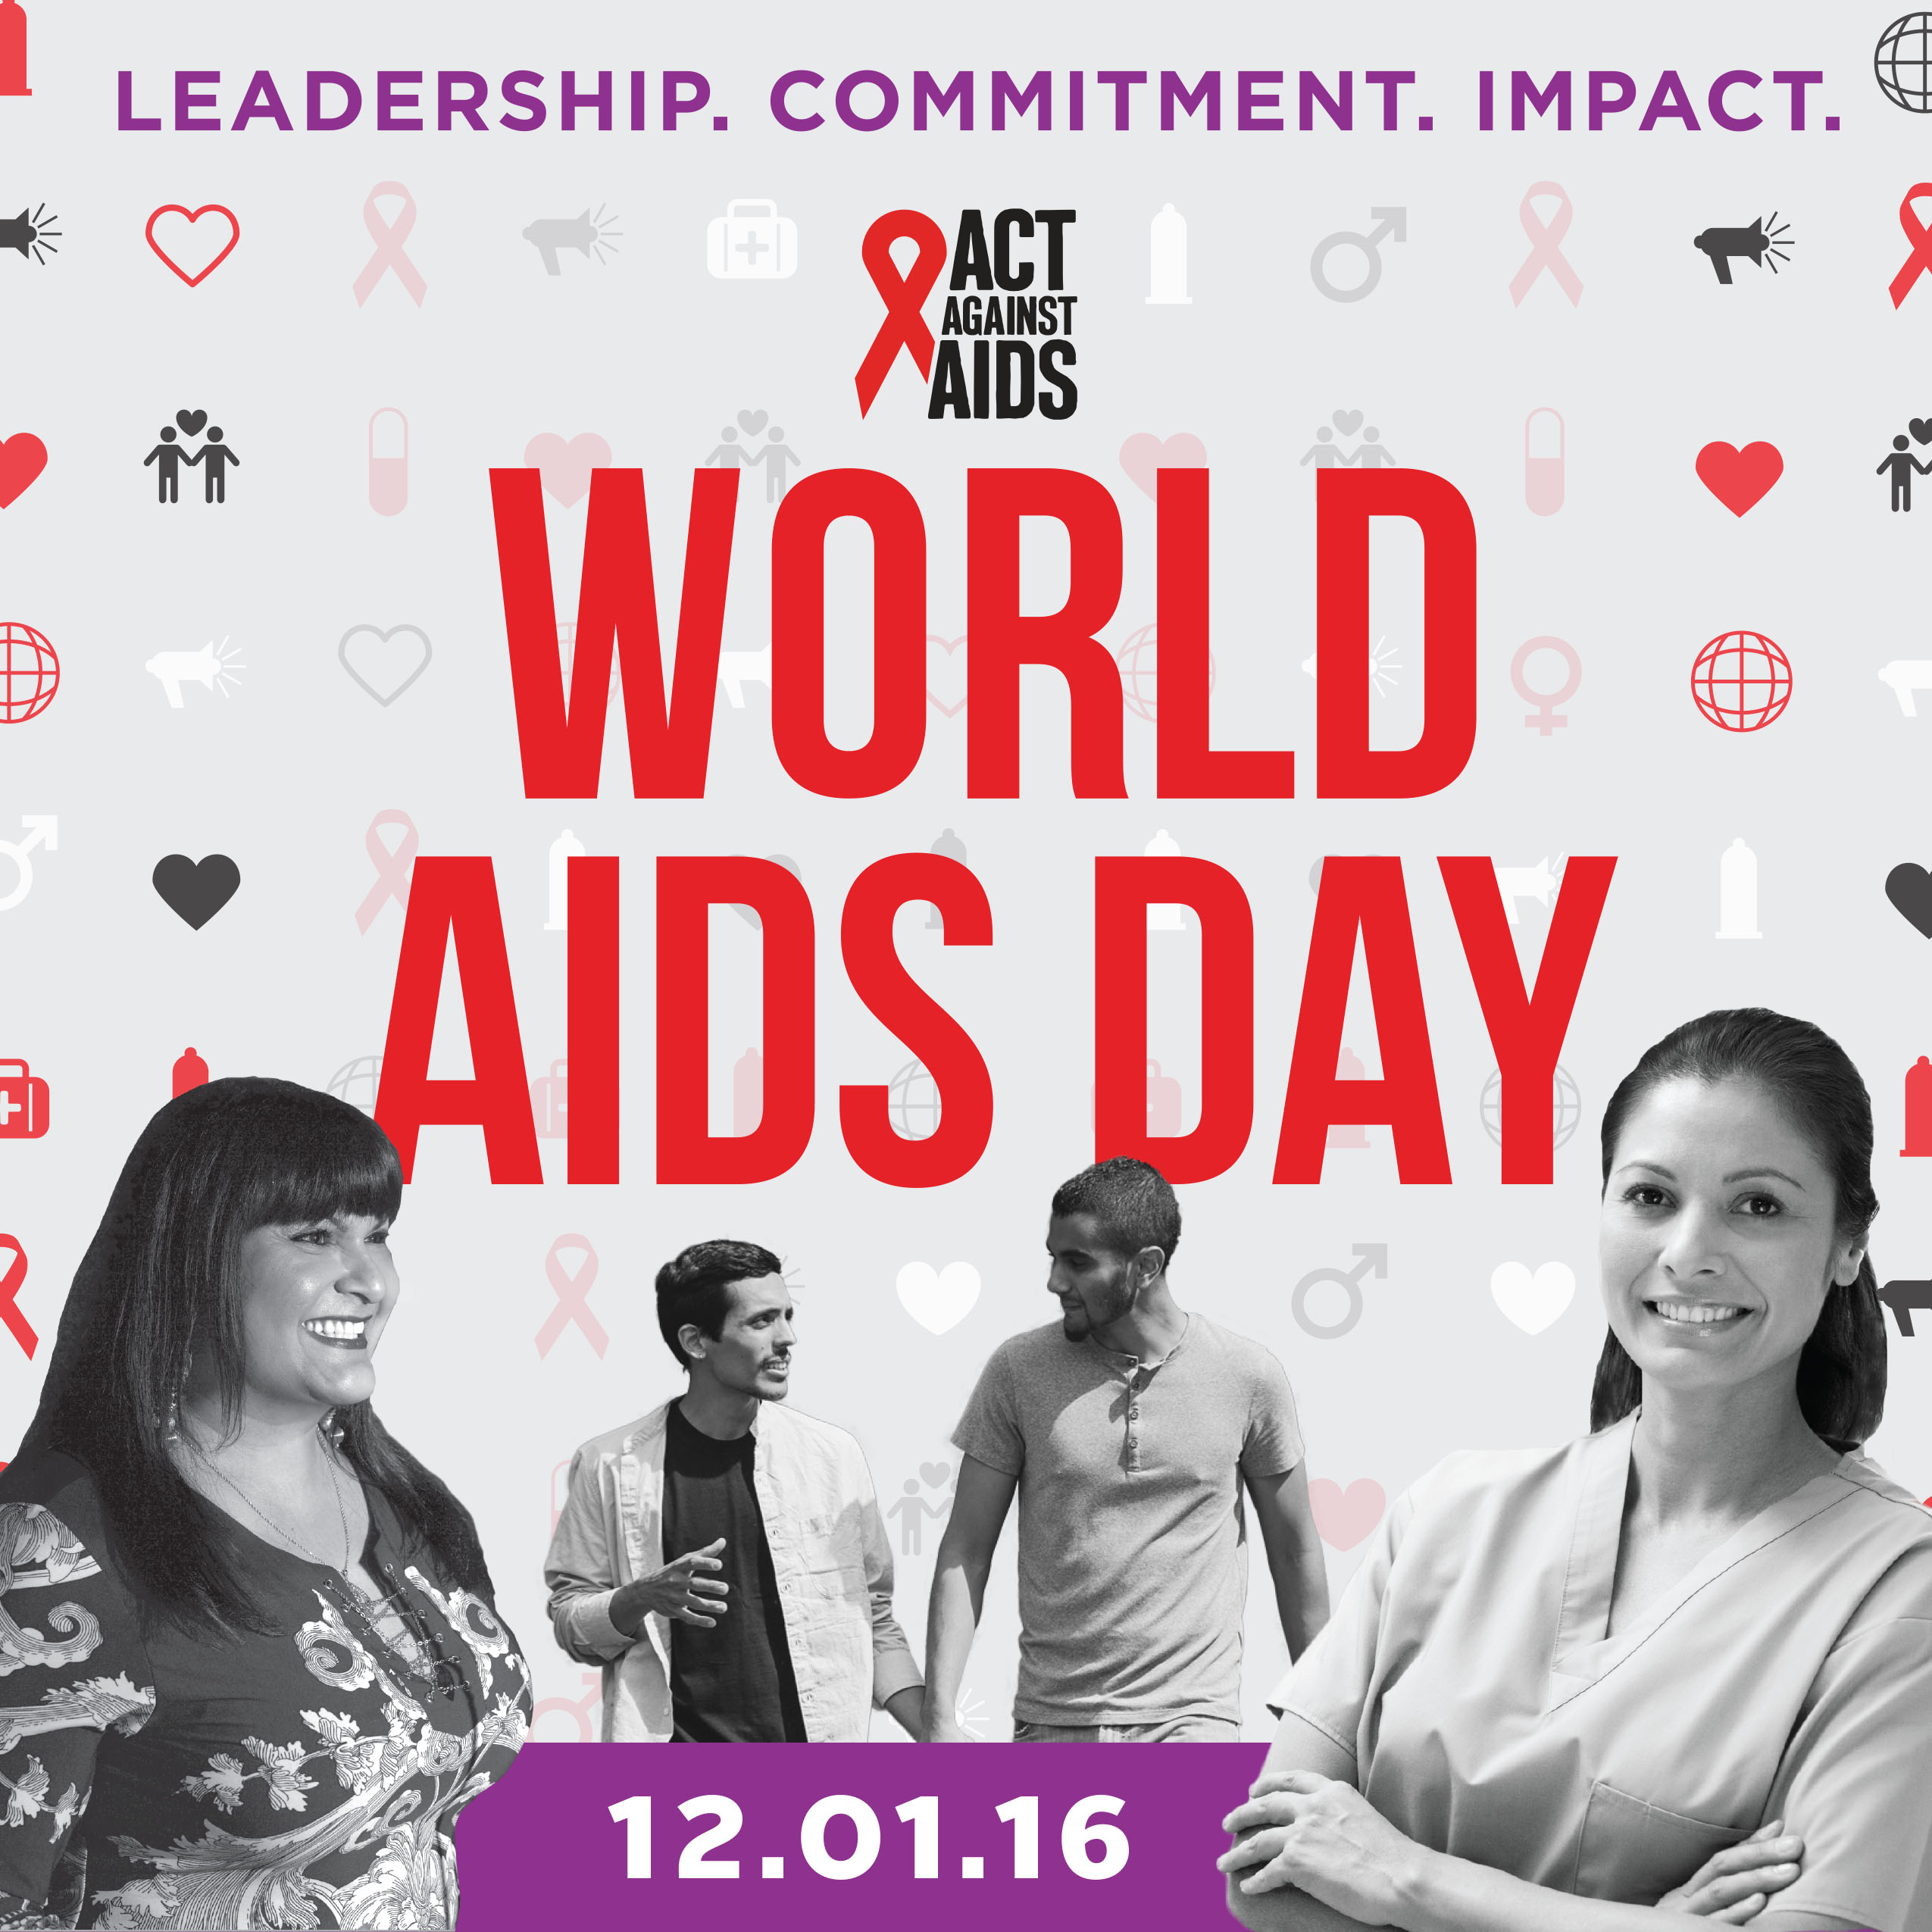 World AIDS Day 12.01.16